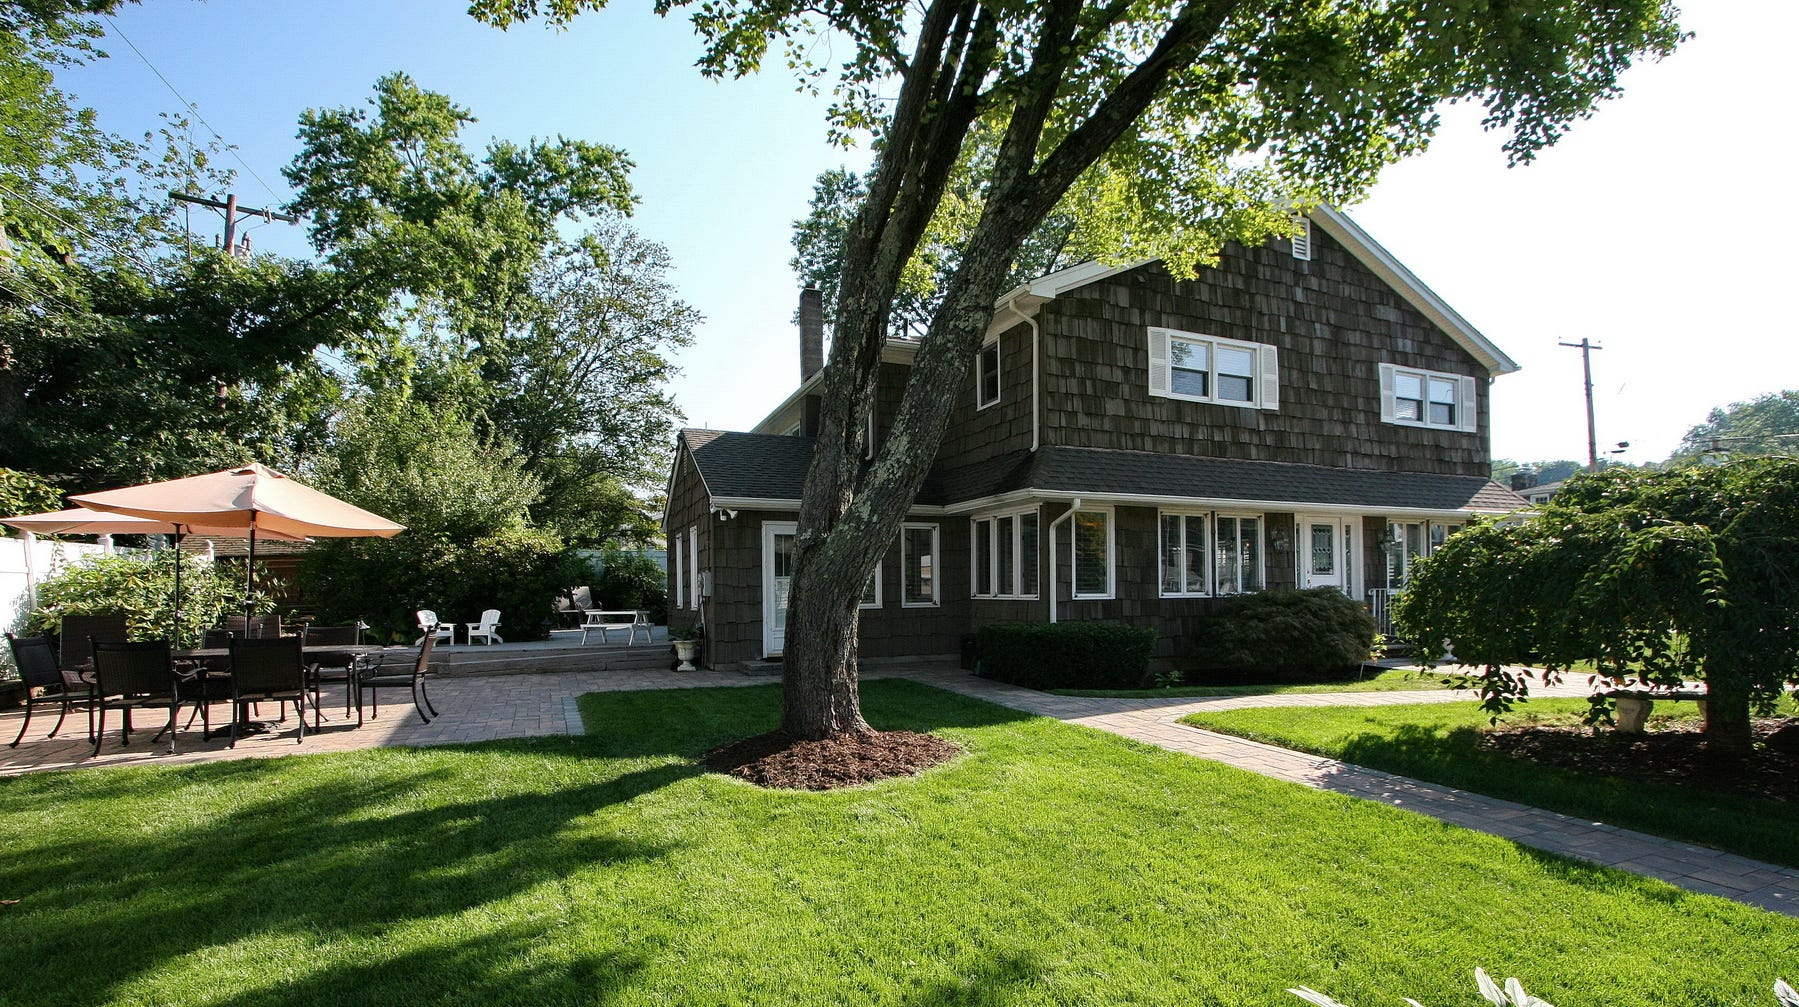 This home is part of  the Green Pond lake and recreational community in Rockaway Township. Green Pond is known as New Jersey's cleanest lake.